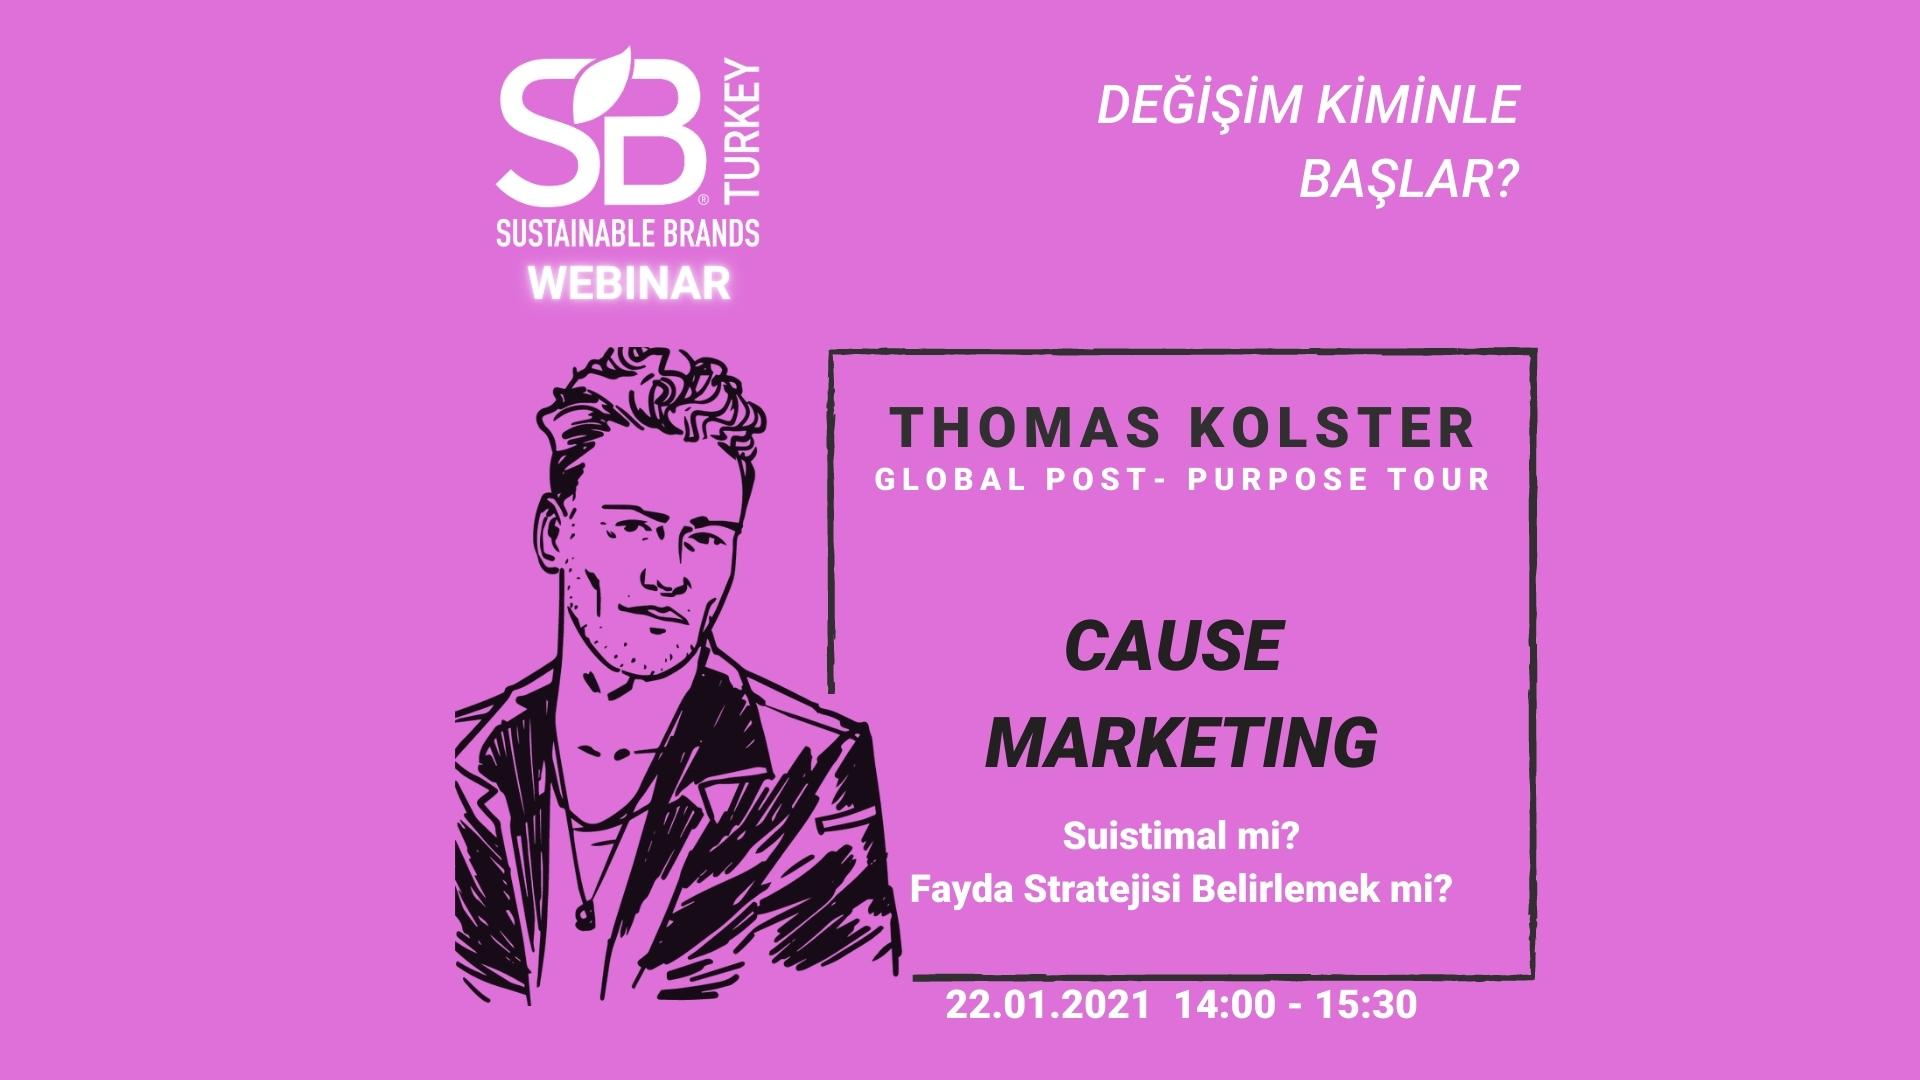 Thomas Kolster Global Post-Purpose Tour: Cause Marketing